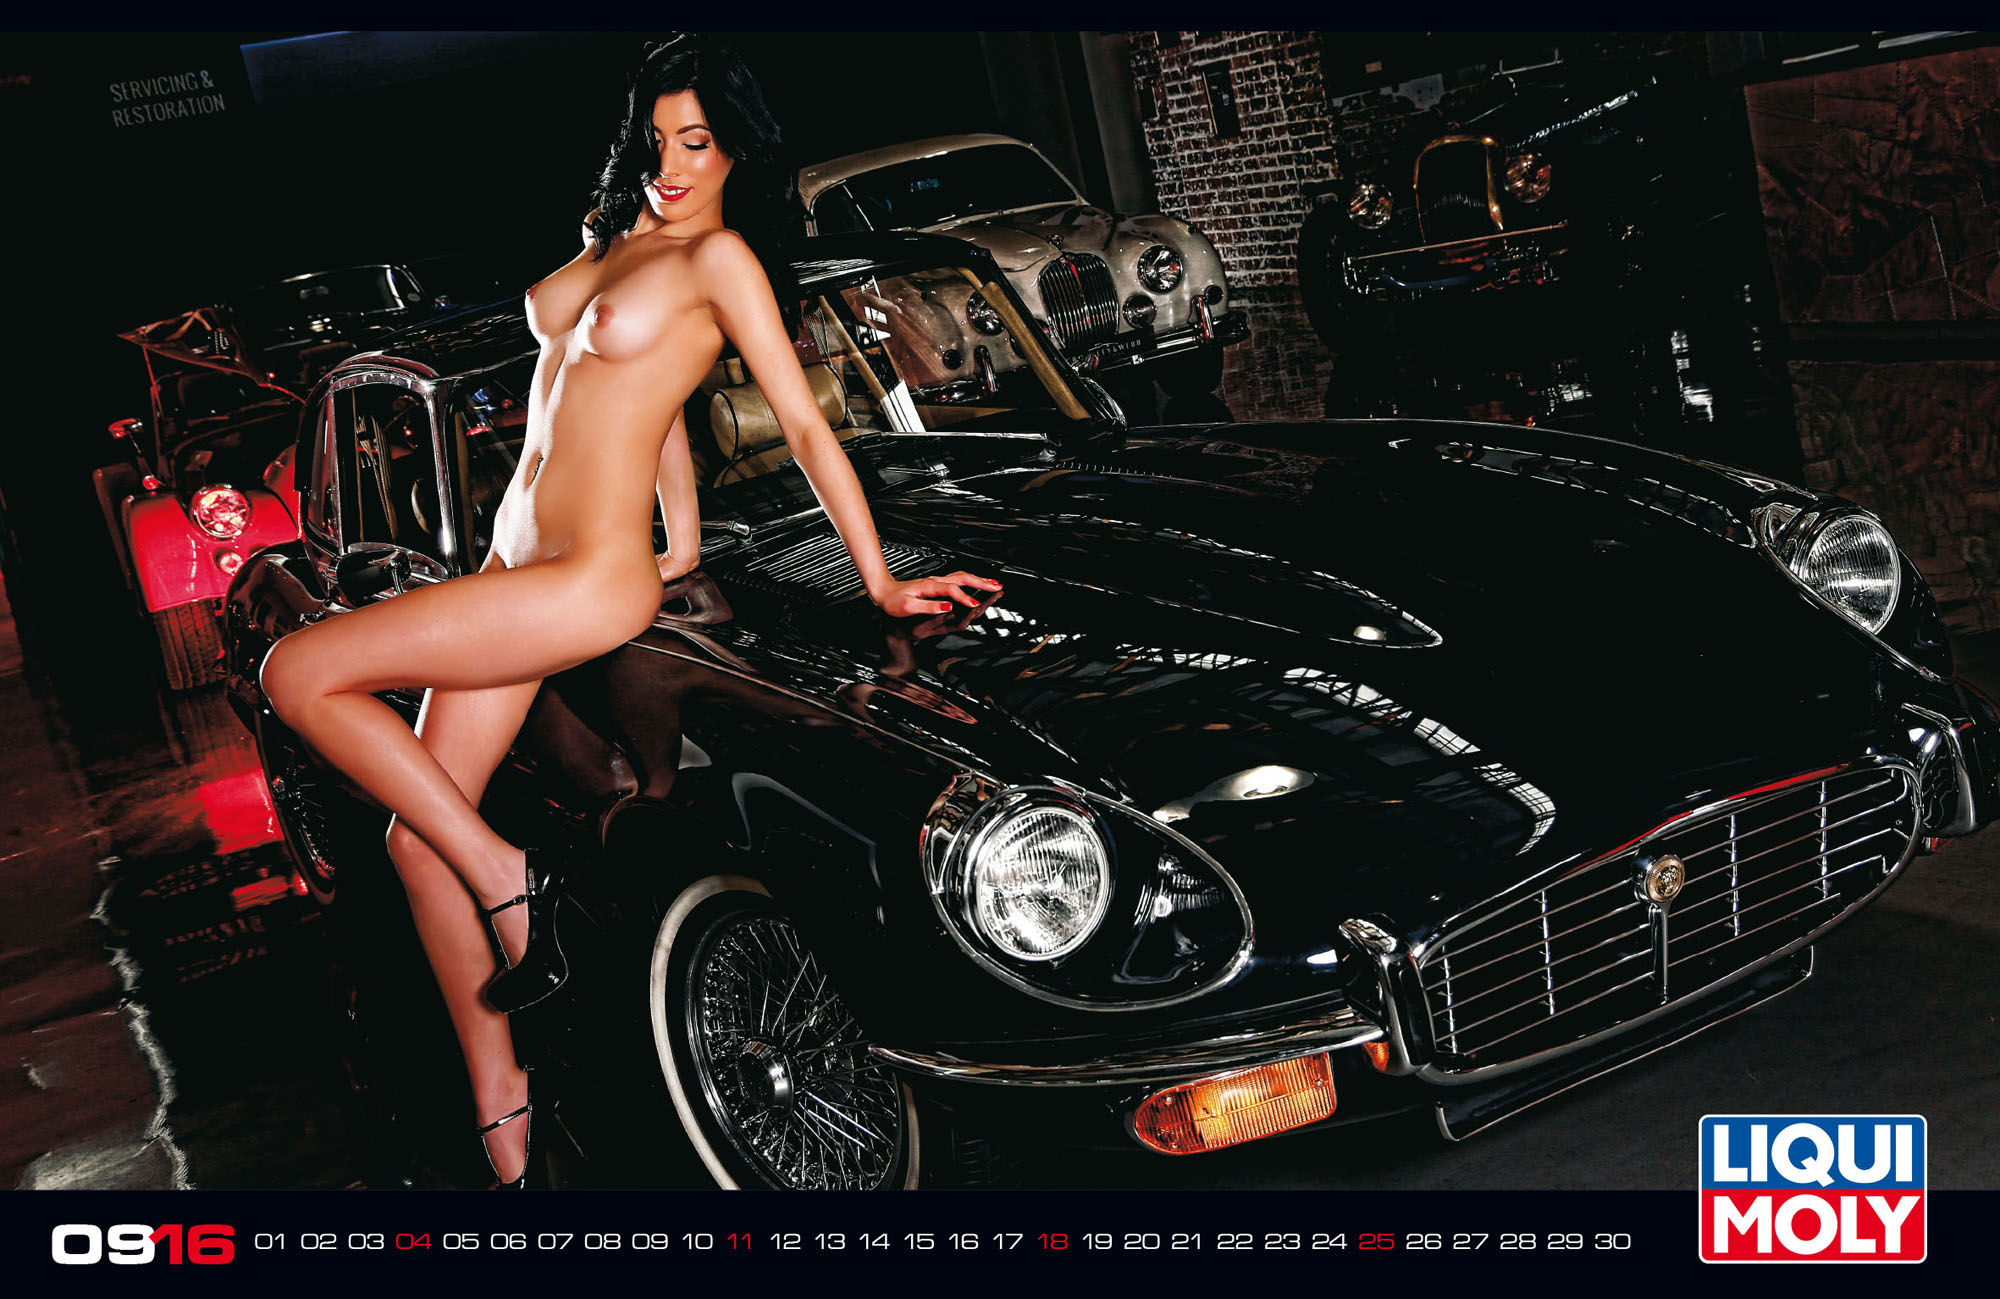 Nenas y Naves… edición especial Calendario HOT 2016 (WOW)